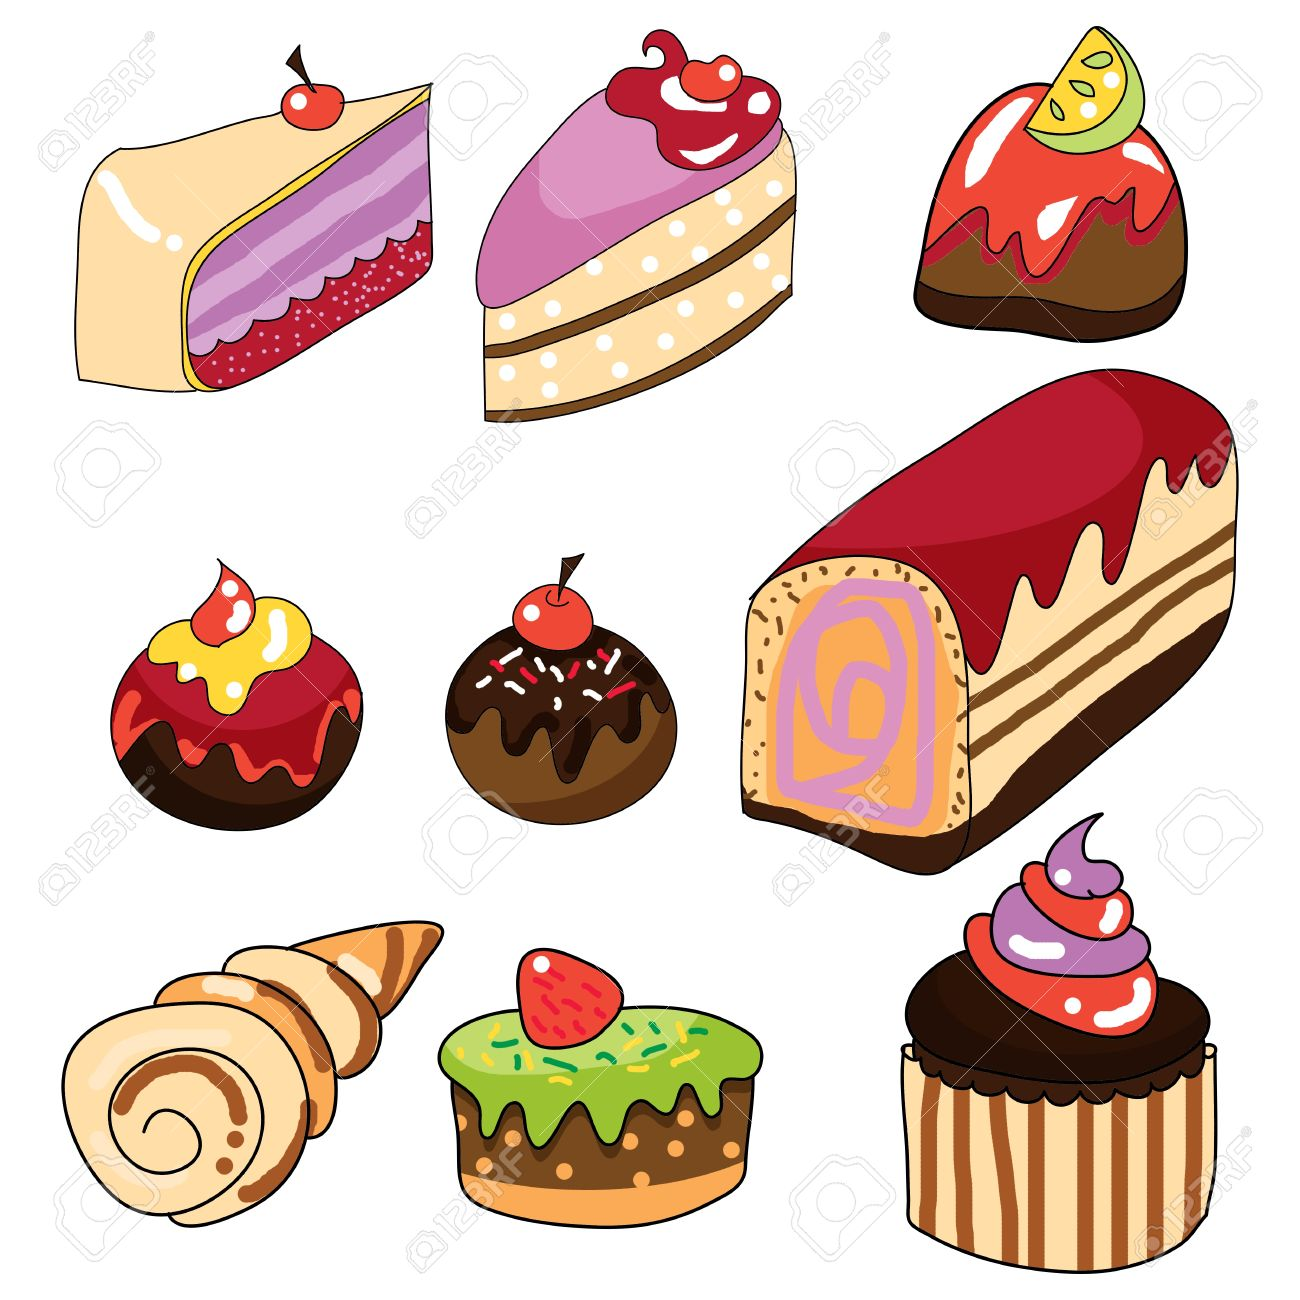 Pastries clipart 6 » Clipart Station.